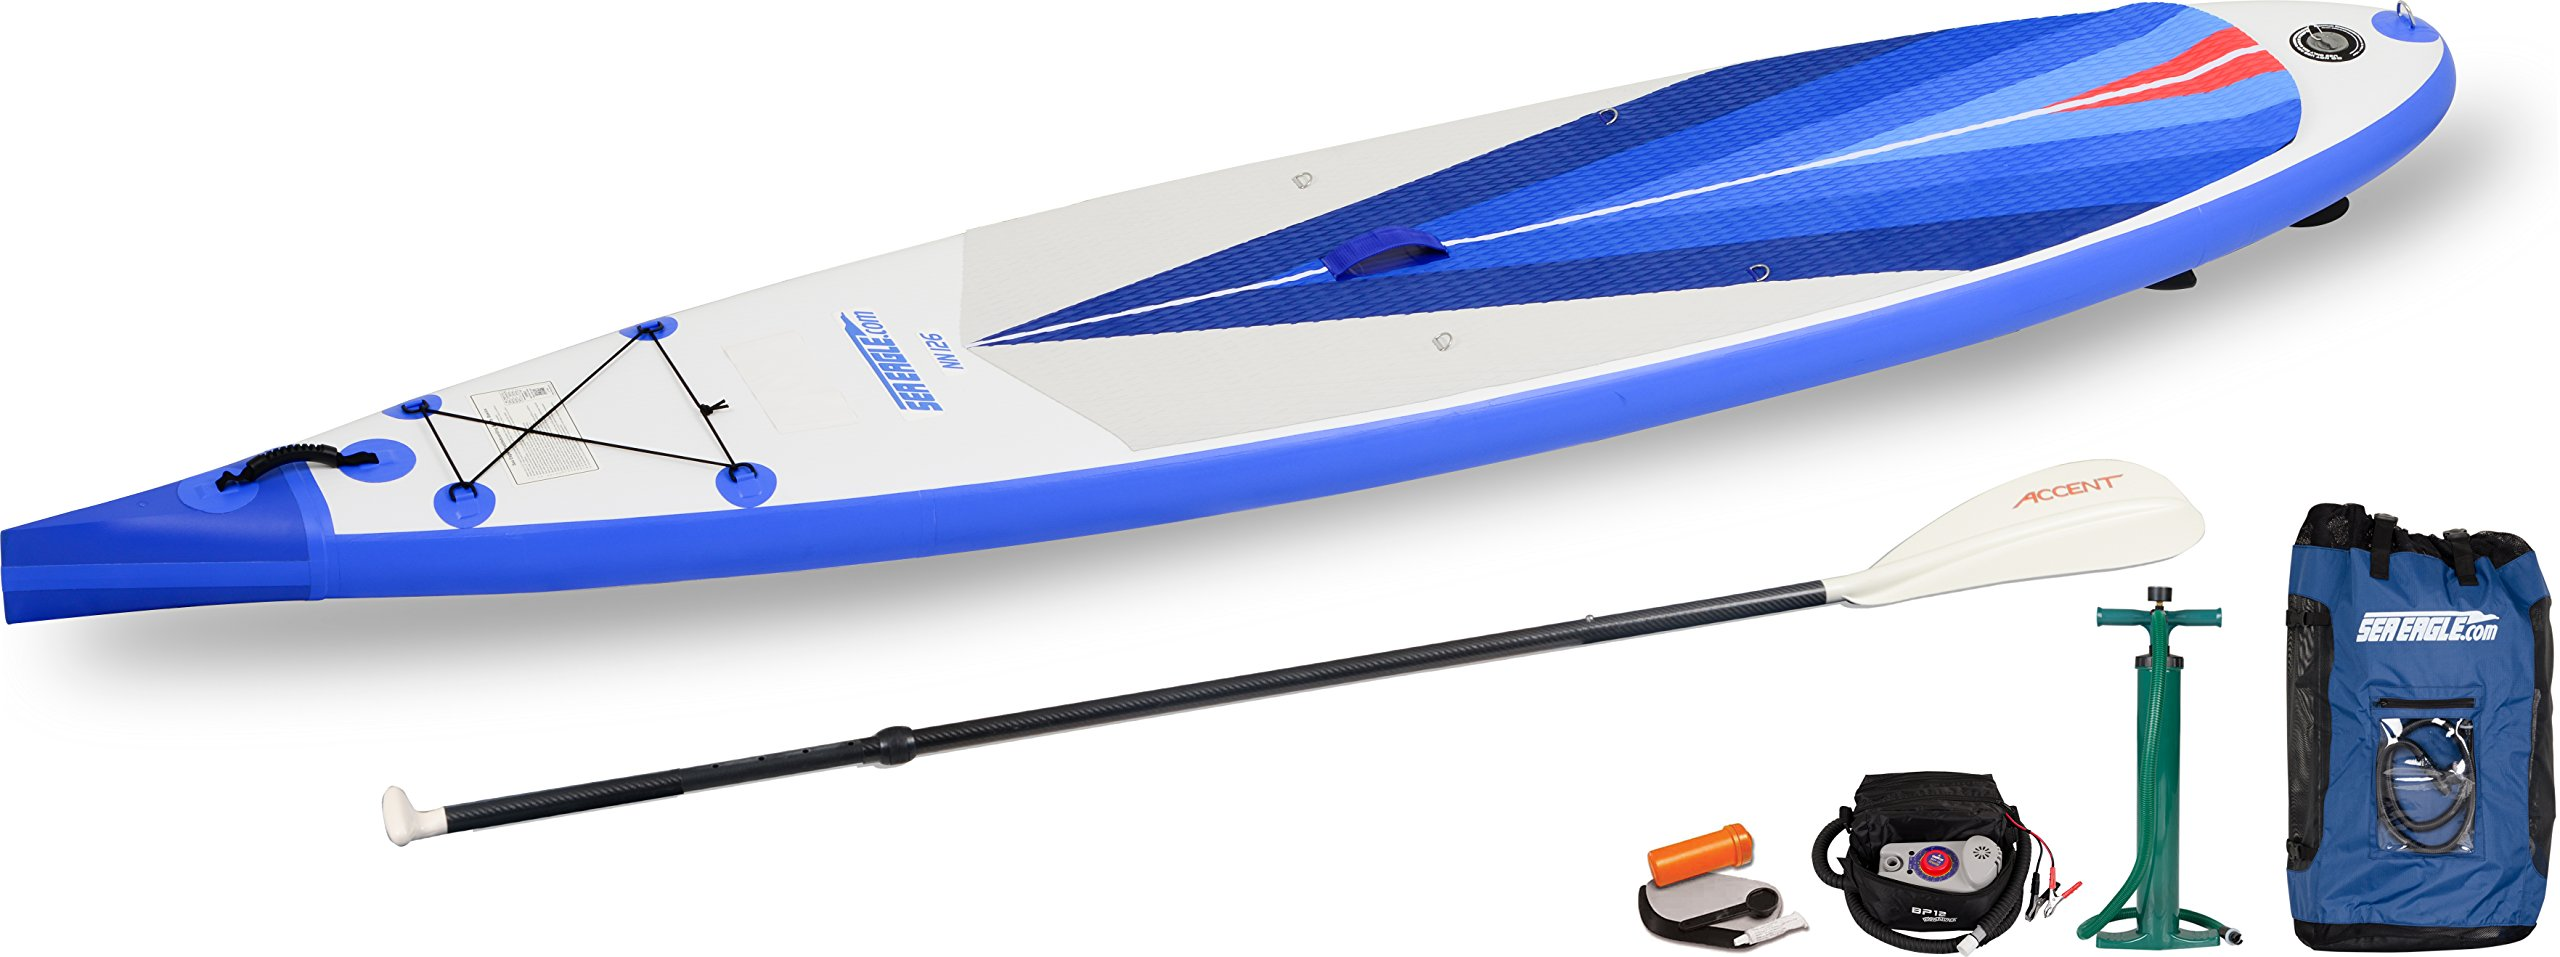 Sea Eagle NeedleNose NN126 Touring Stand Up Paddle Board SUP- Electric Pump Package